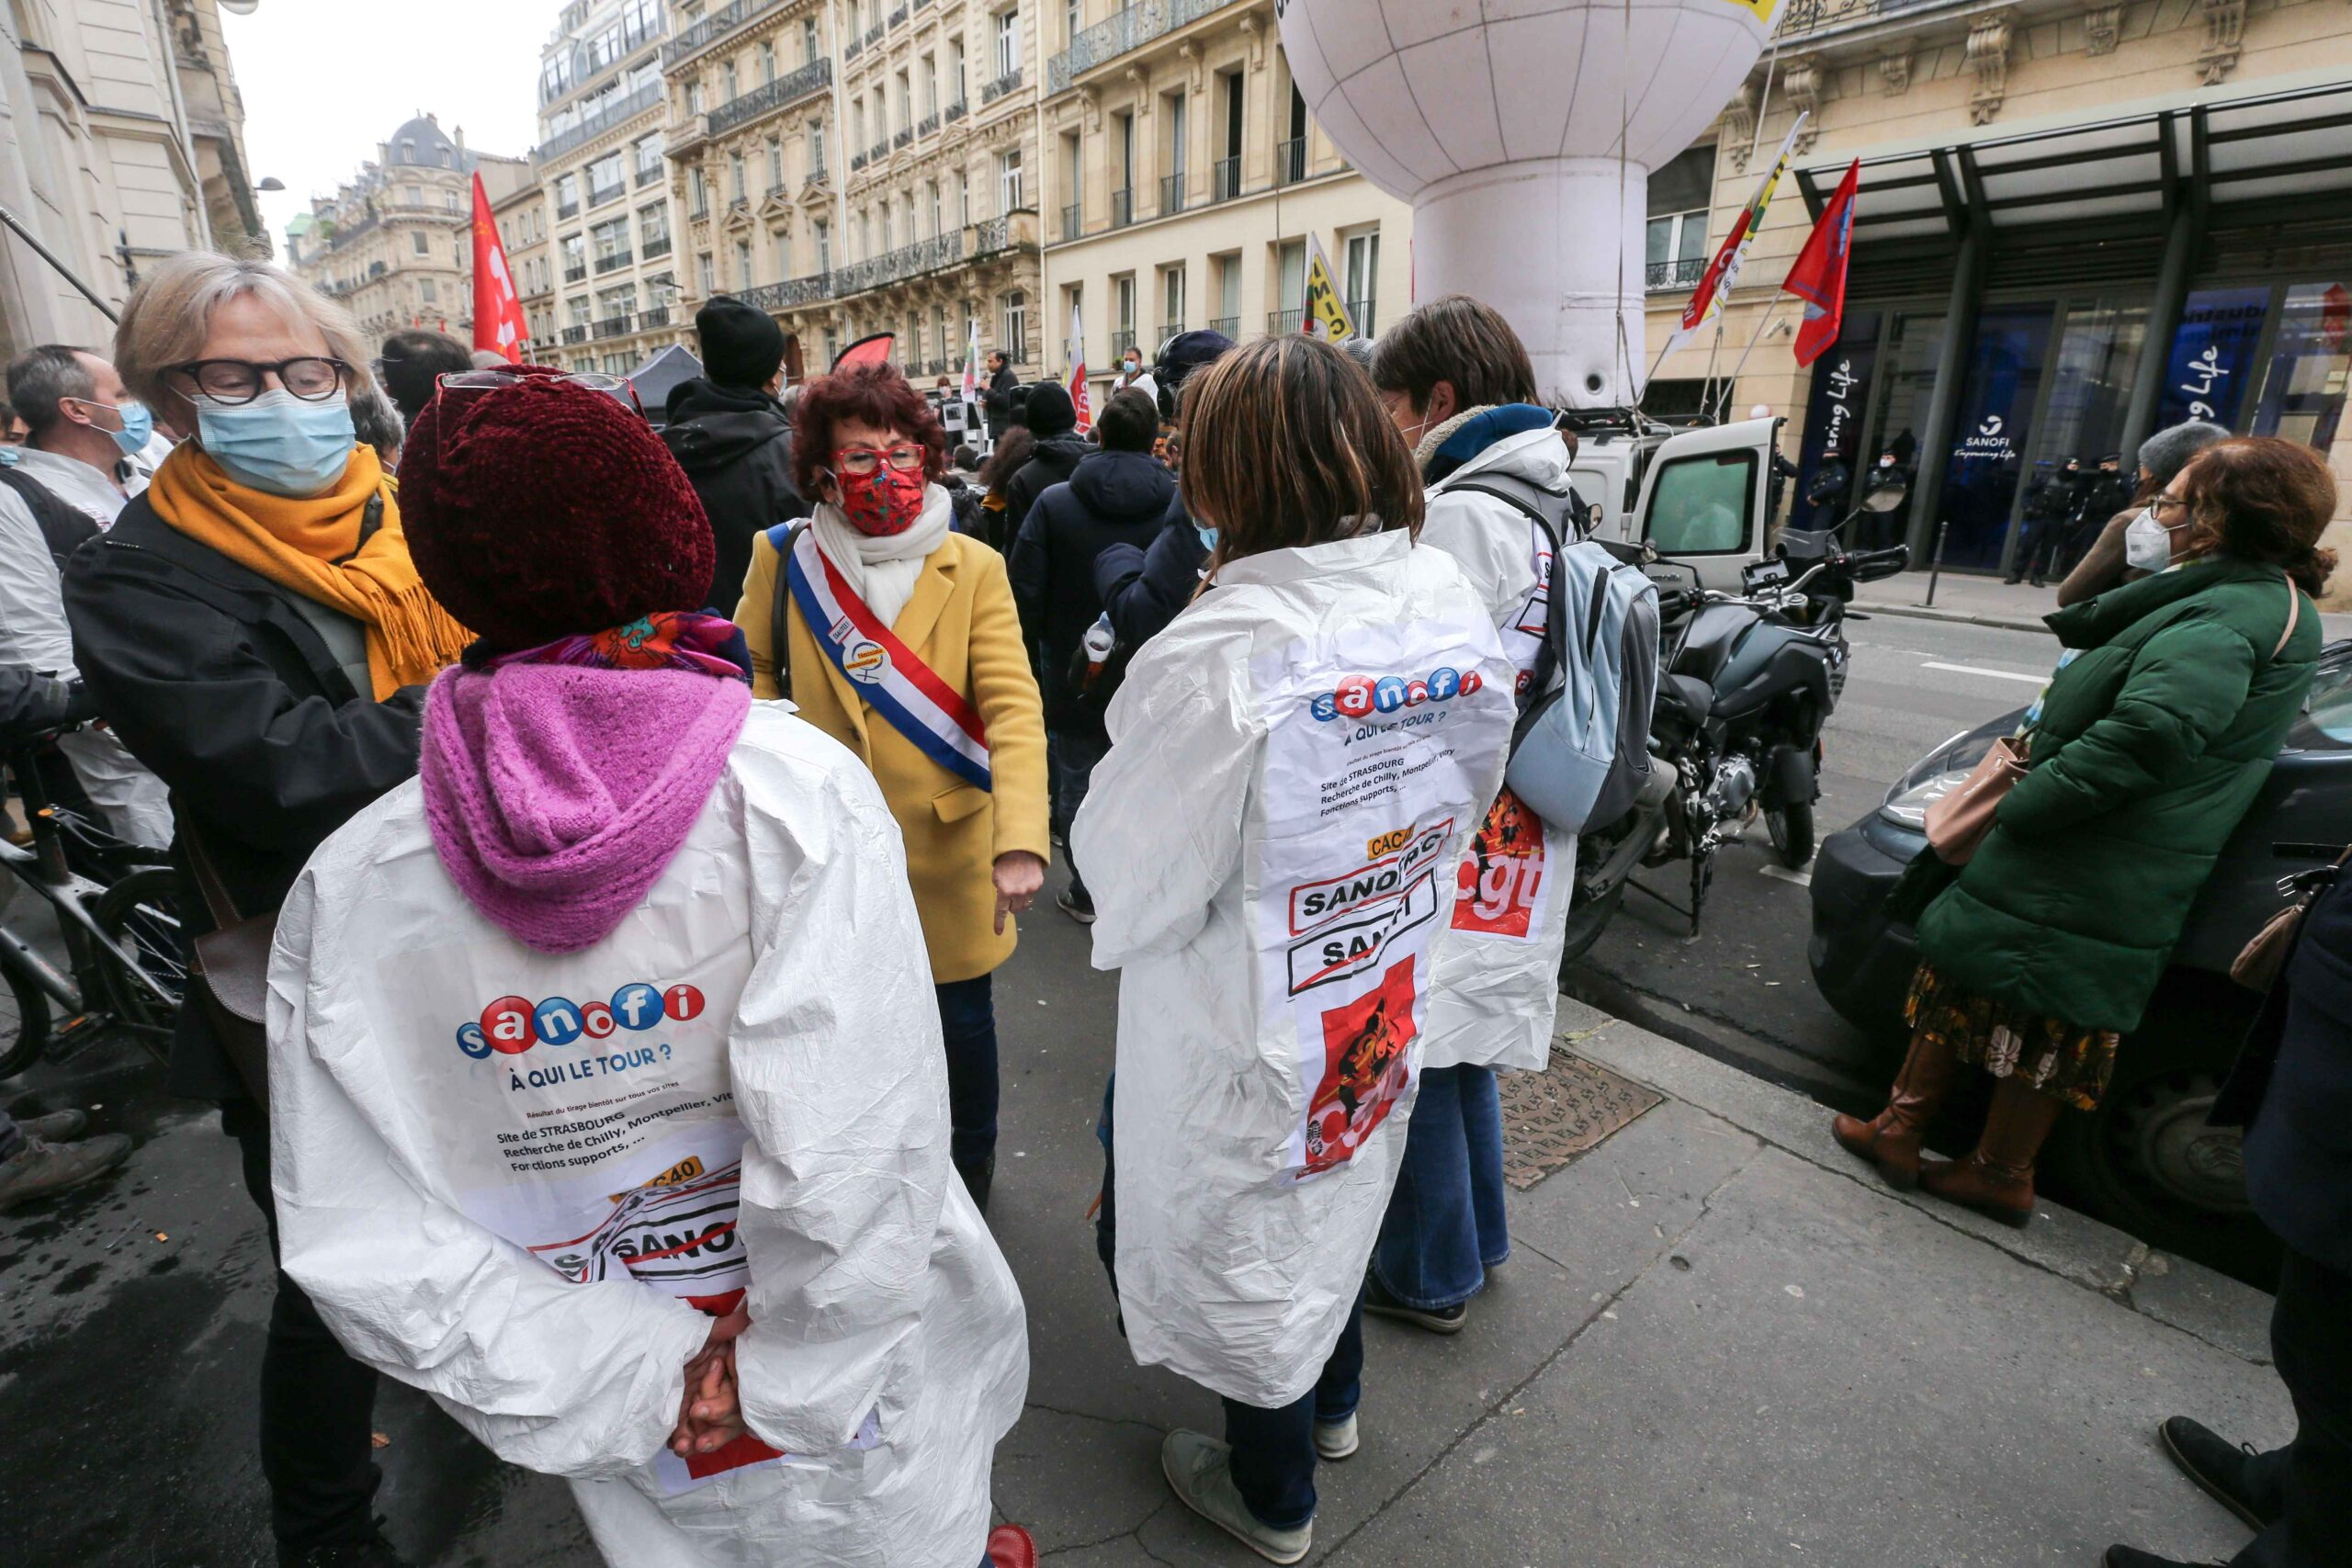 Gathering in front of the French pharma giant Sanofi group headquarters in Paris, on February 4, 202, during a day of action to highlight the current economic and cultural difficulties being experienced across France as the coronavirus (Covid-19) pandemic